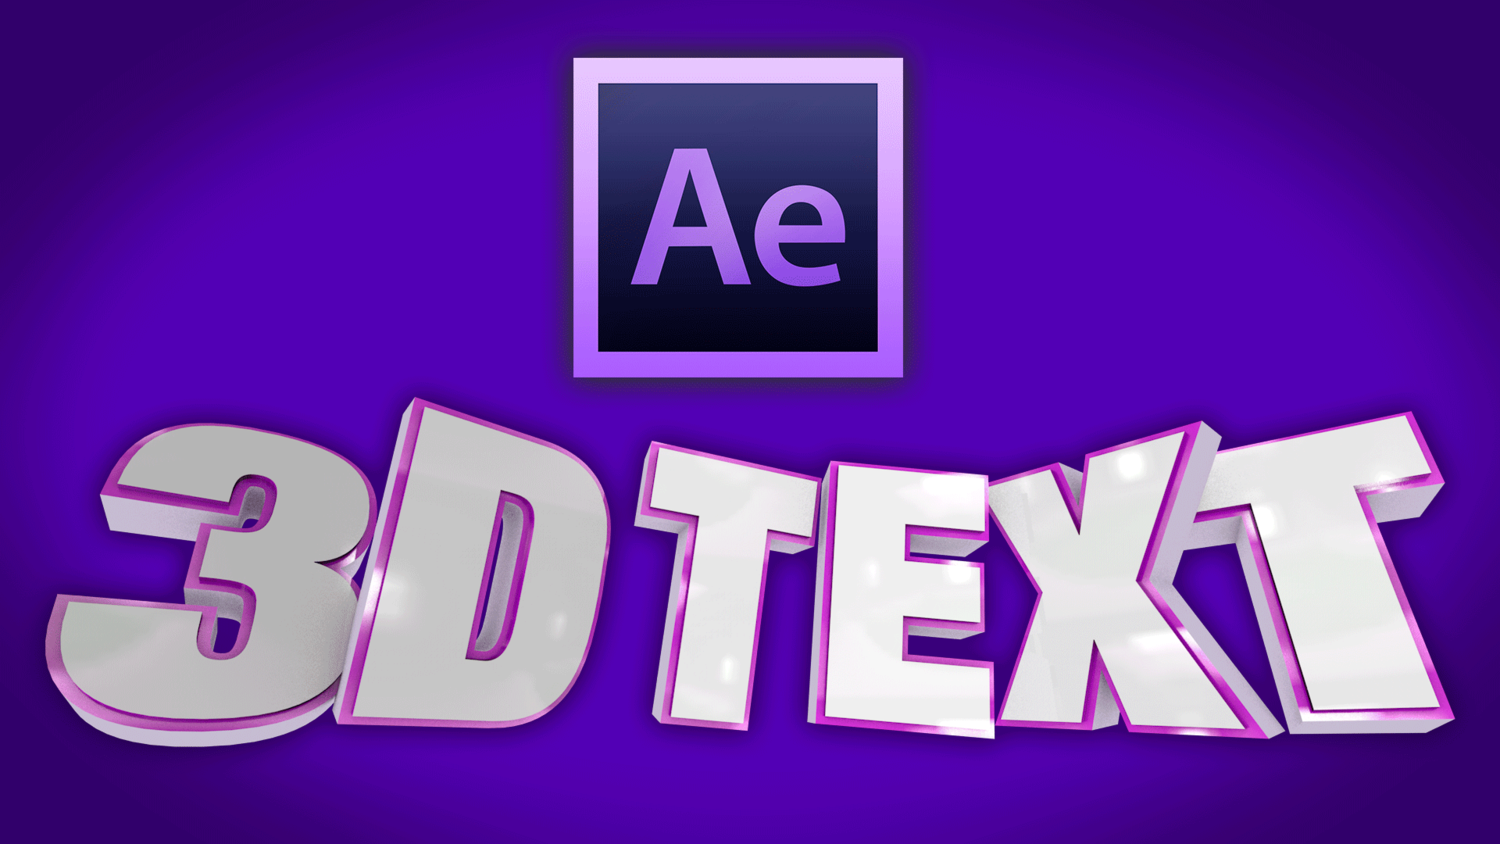 AE_3D_text_01.png